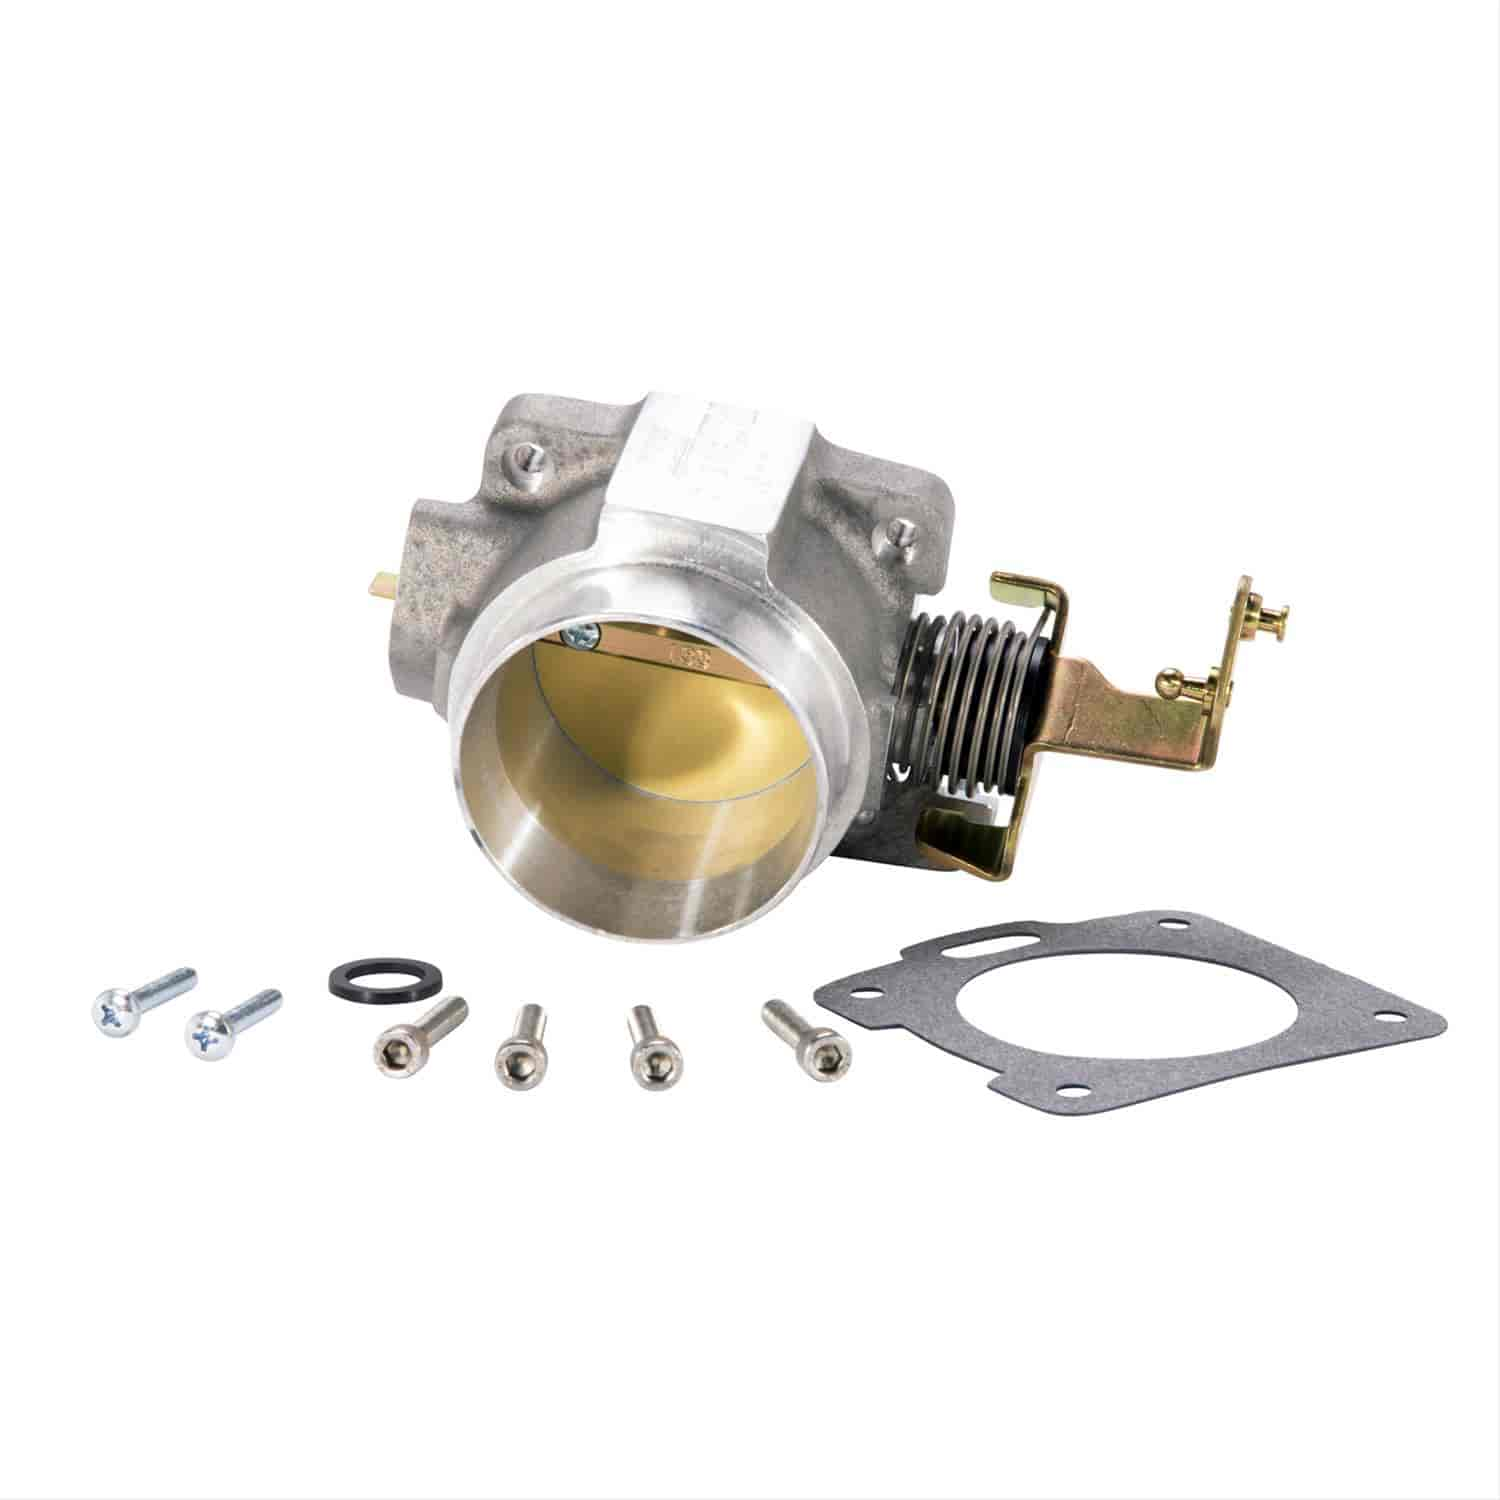 Bbk Performance Parts Power Plus Throttle Body 1999 2000 Ford Mustang 3 8l V6